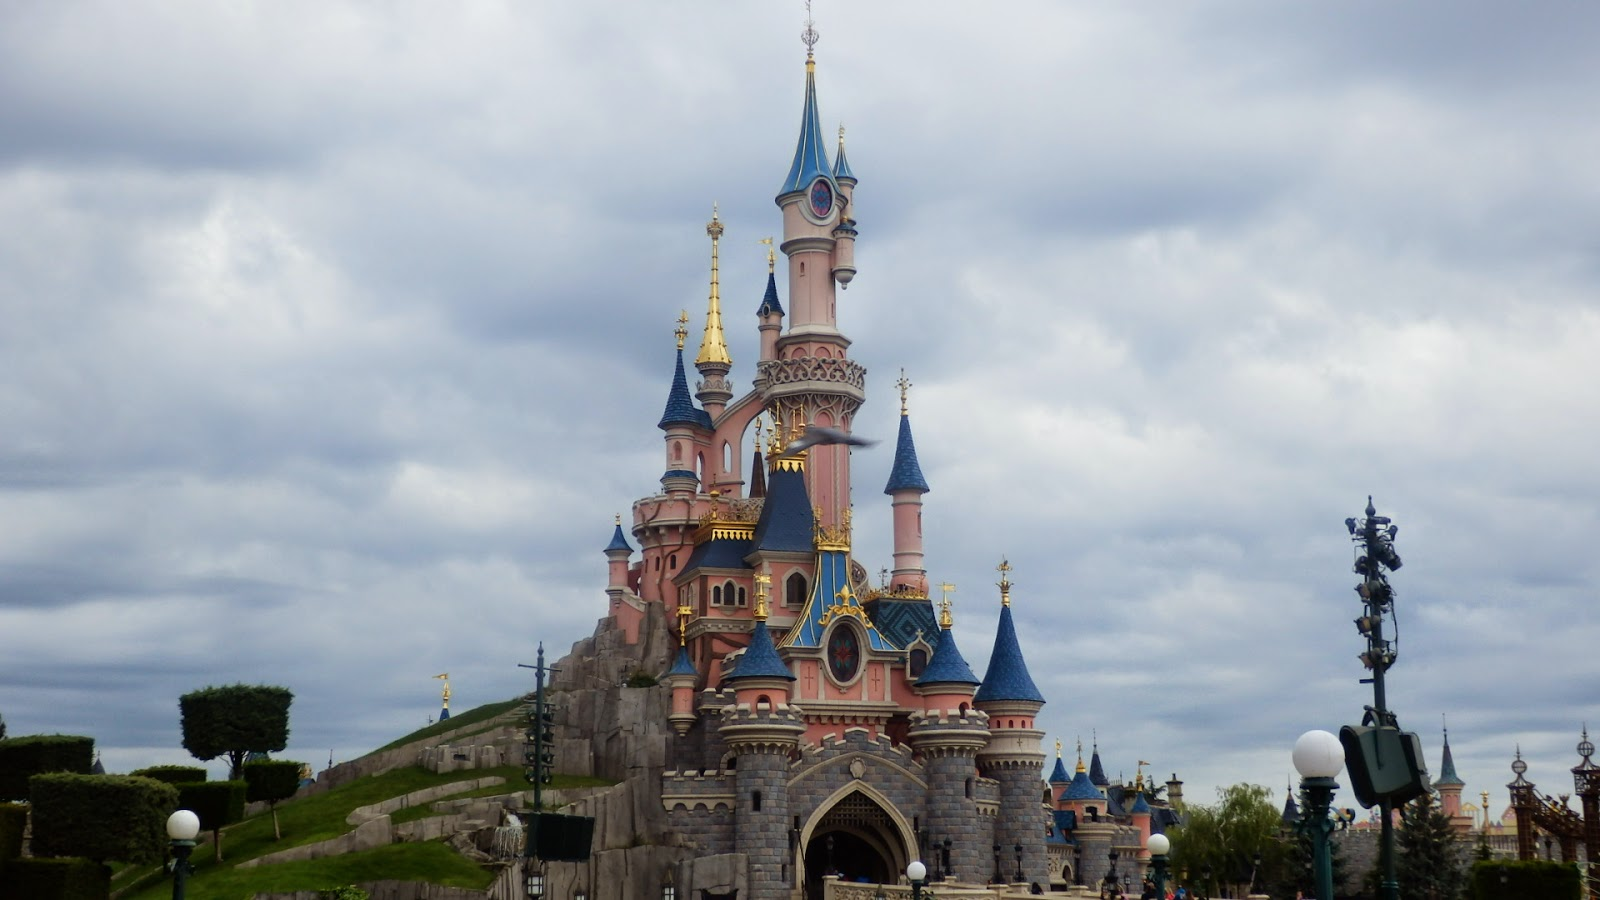 Snow Whites Castle Disneyland Paris